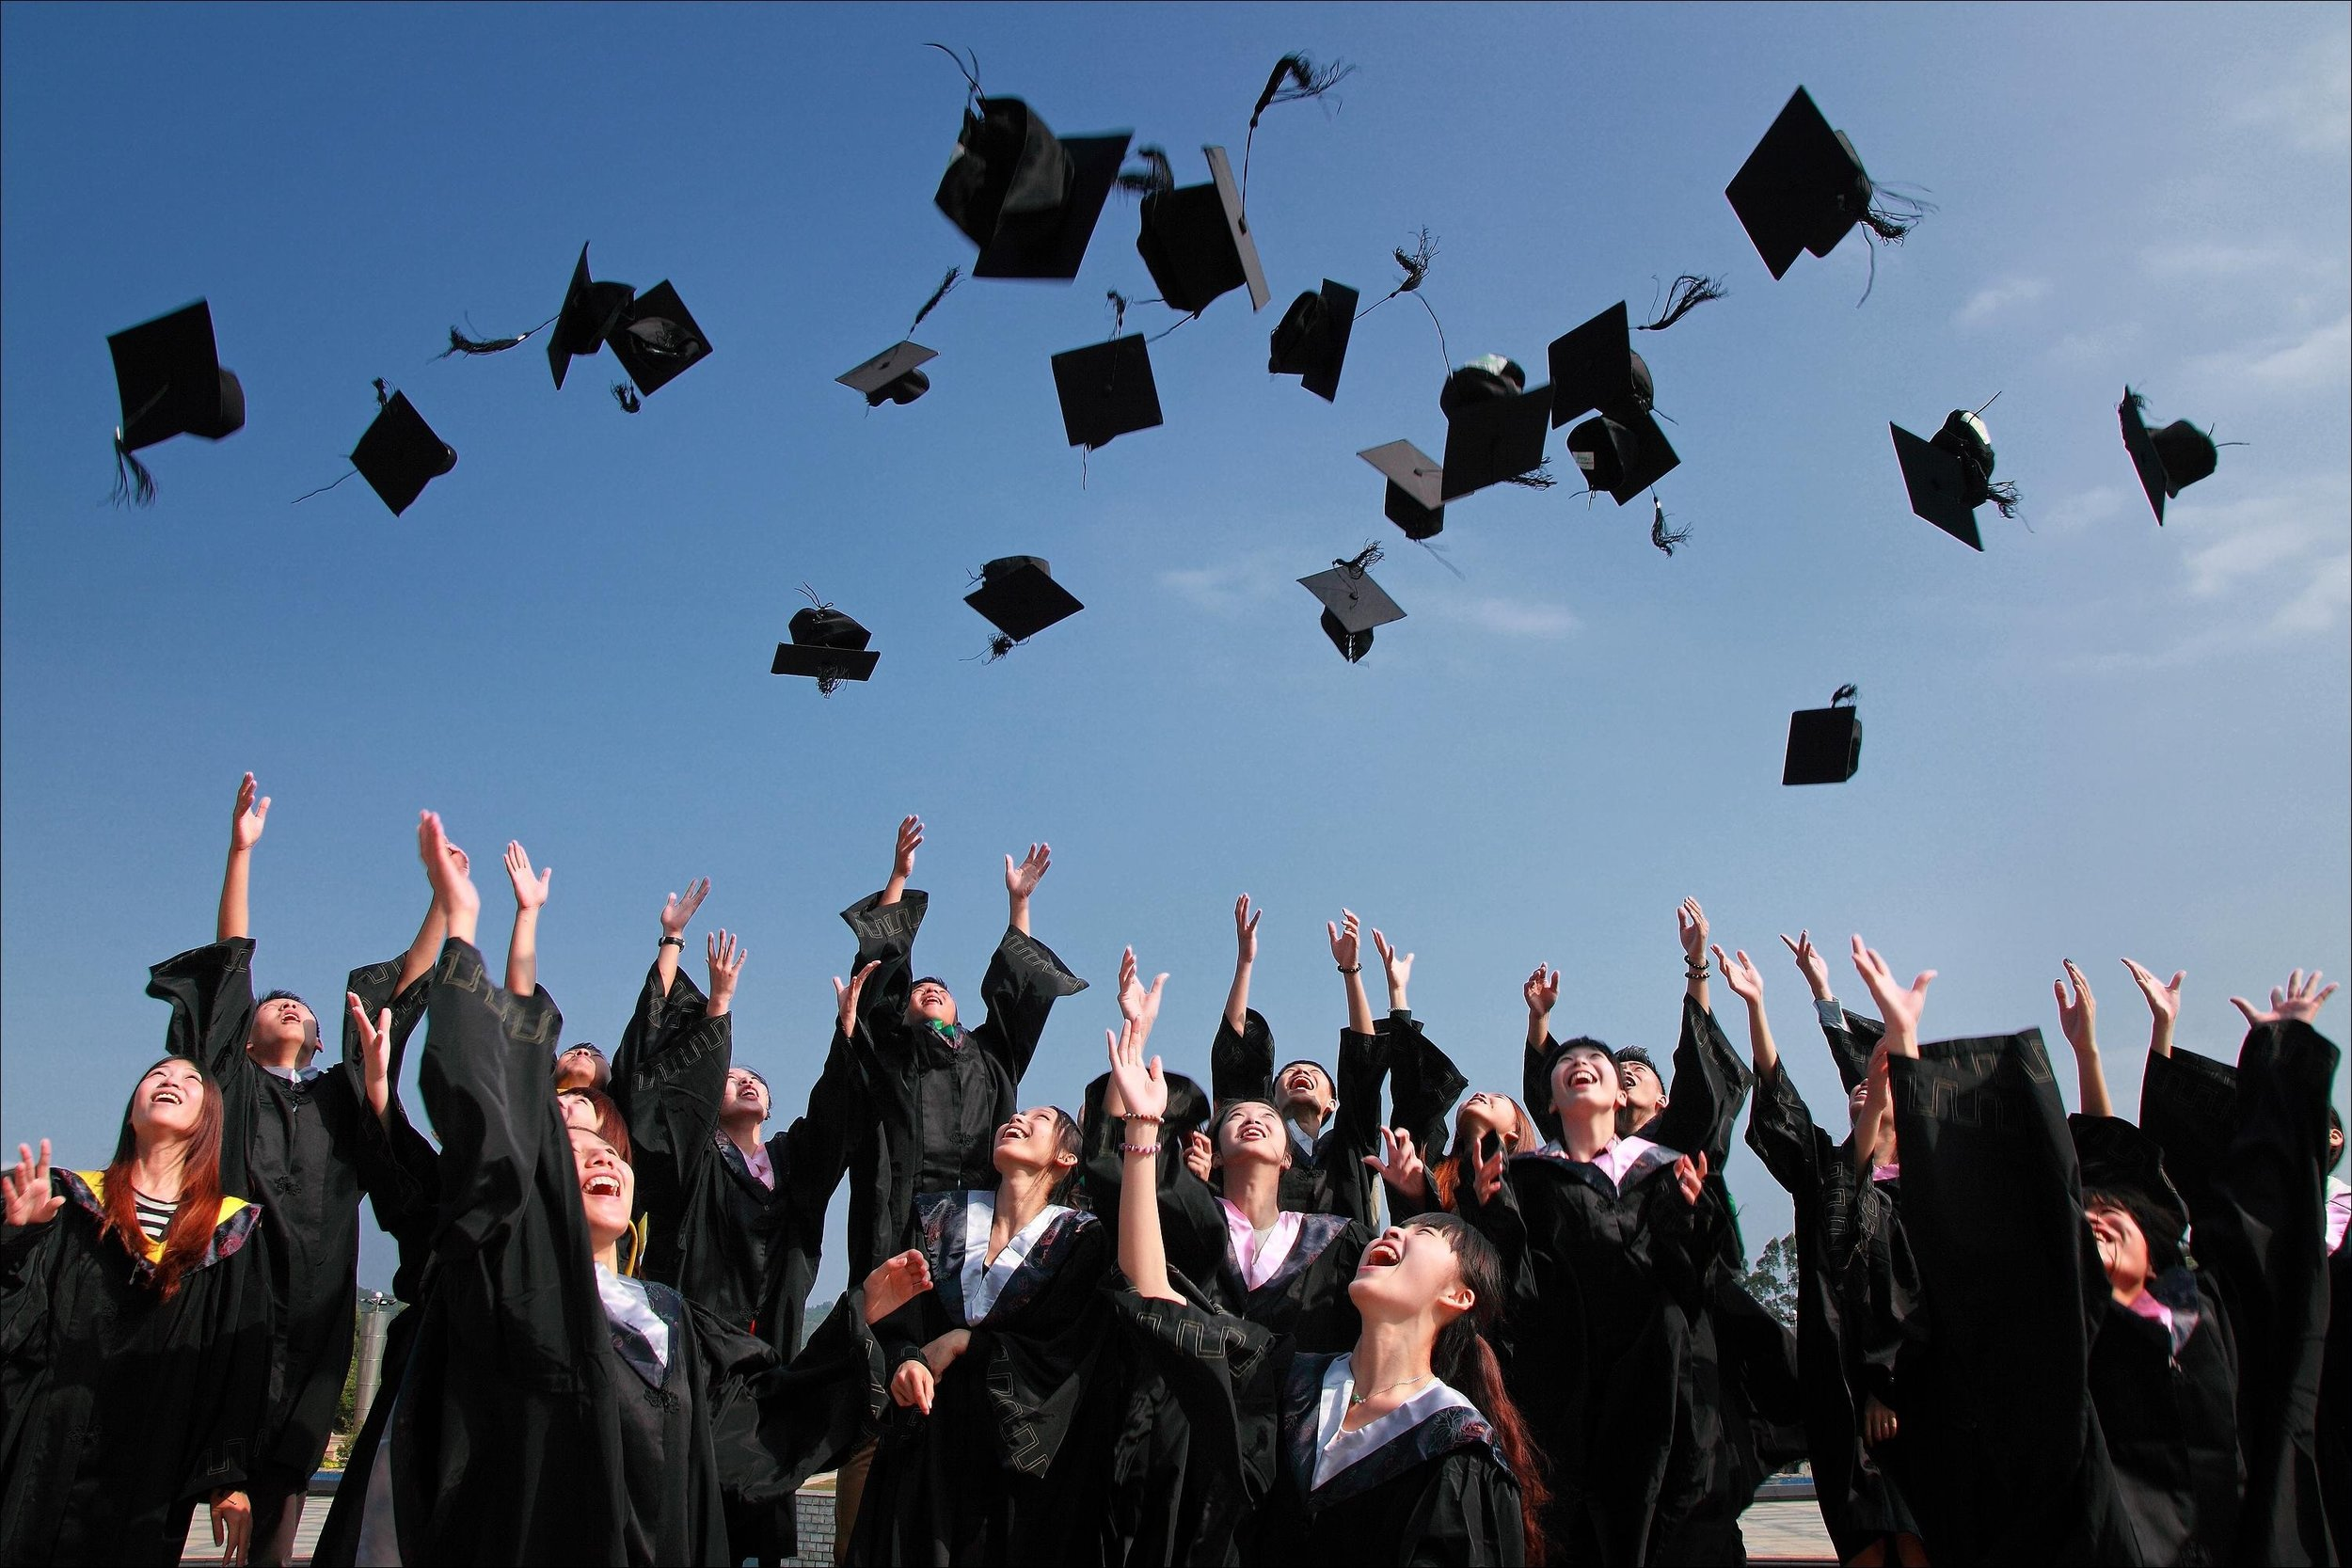 Newly Graduated People Wearing Black Academy Gowns Throwing Hats Up in the Air via Pixbay